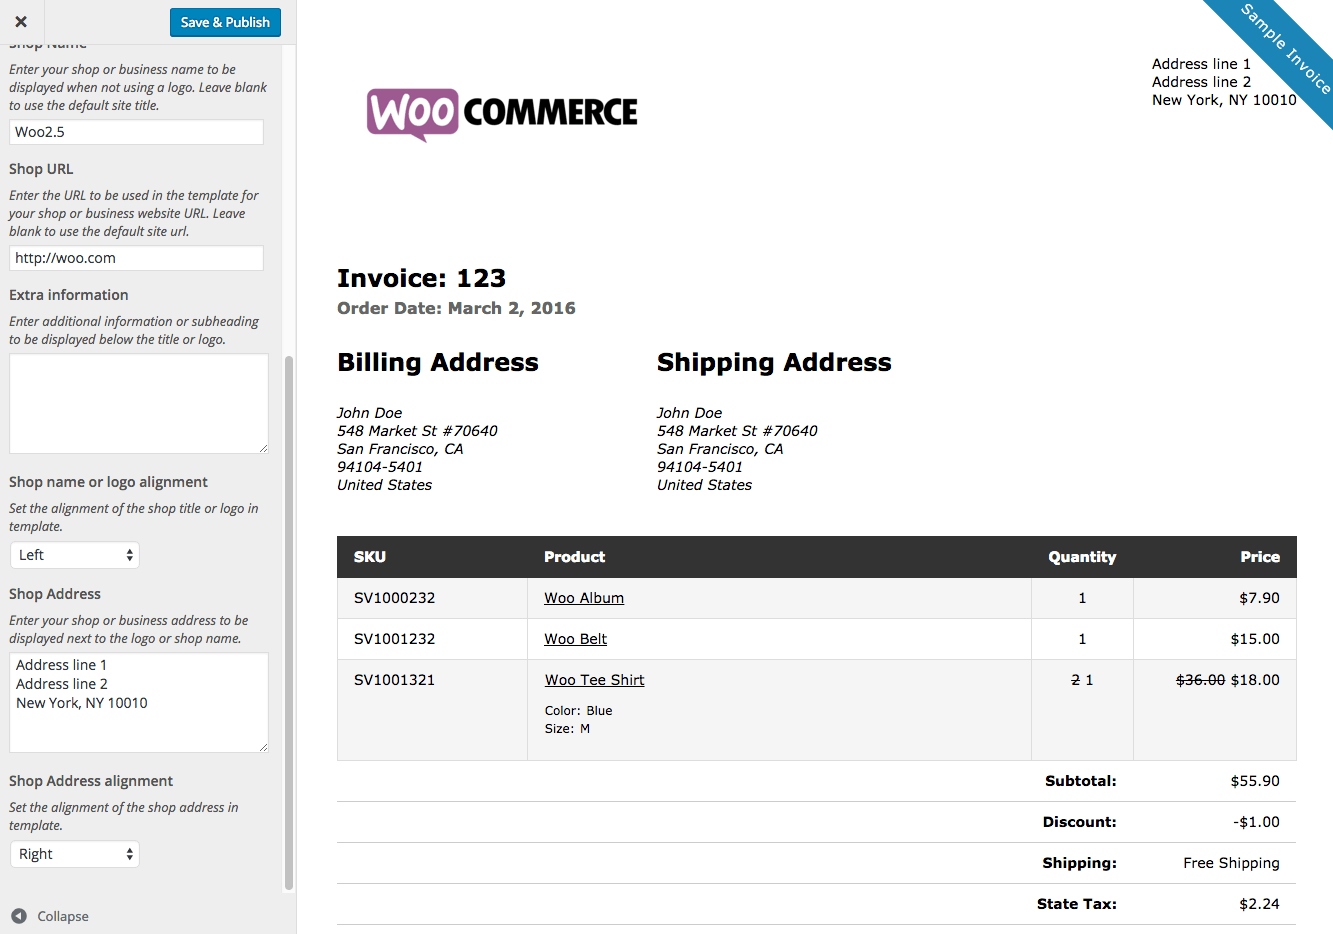 Opposenewapstandardsus  Unusual Print Invoices Amp Packing Lists  Woocommerce With Licious Woocommerce Print Invoices  Packing Lists Customizer With Alluring License Receipt Also Best Business Receipt App In Addition Alternative To Neat Receipts And Kindly Confirm Receipt As Well As Receipt System Additionally Avis Rental Car Receipts From Woocommercecom With Opposenewapstandardsus  Licious Print Invoices Amp Packing Lists  Woocommerce With Alluring Woocommerce Print Invoices  Packing Lists Customizer And Unusual License Receipt Also Best Business Receipt App In Addition Alternative To Neat Receipts From Woocommercecom